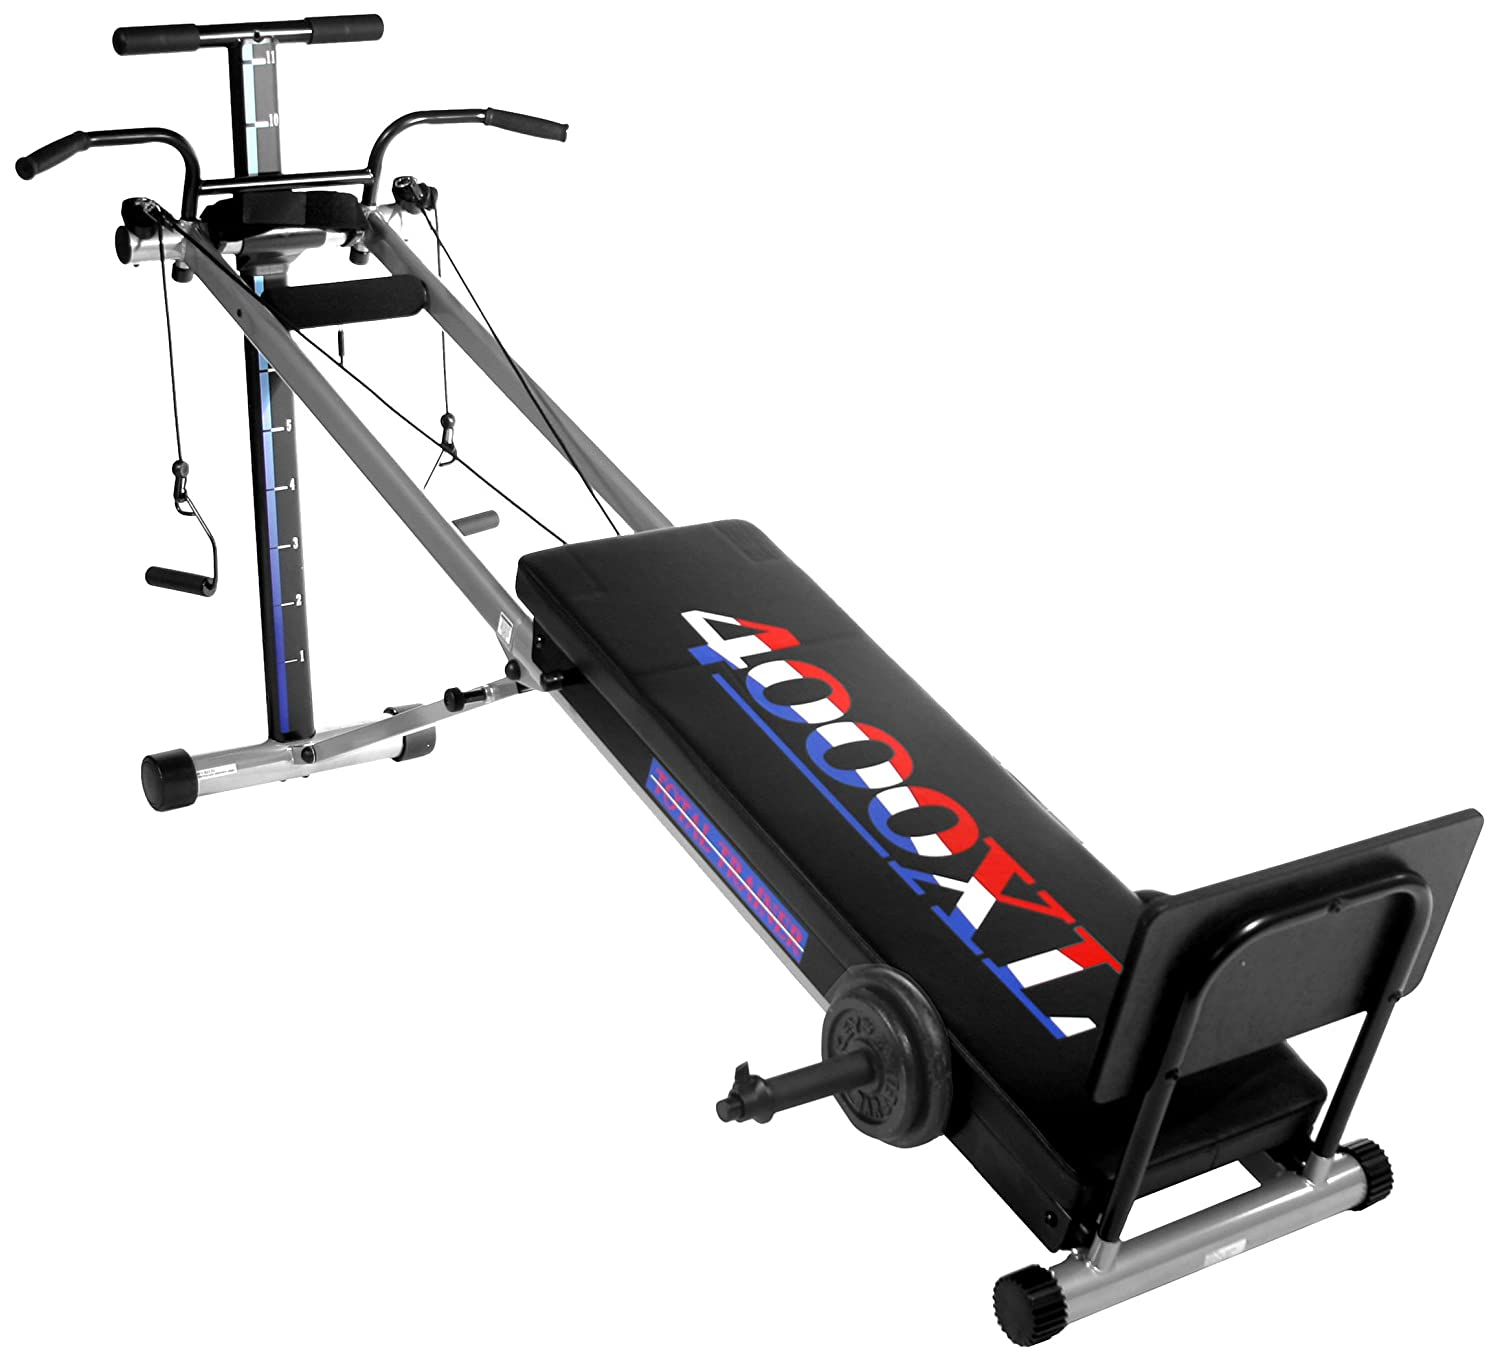 Amazon.com : Bayou Fitness Total Trainer 4000-XL Home Gym : Sports &  Outdoors